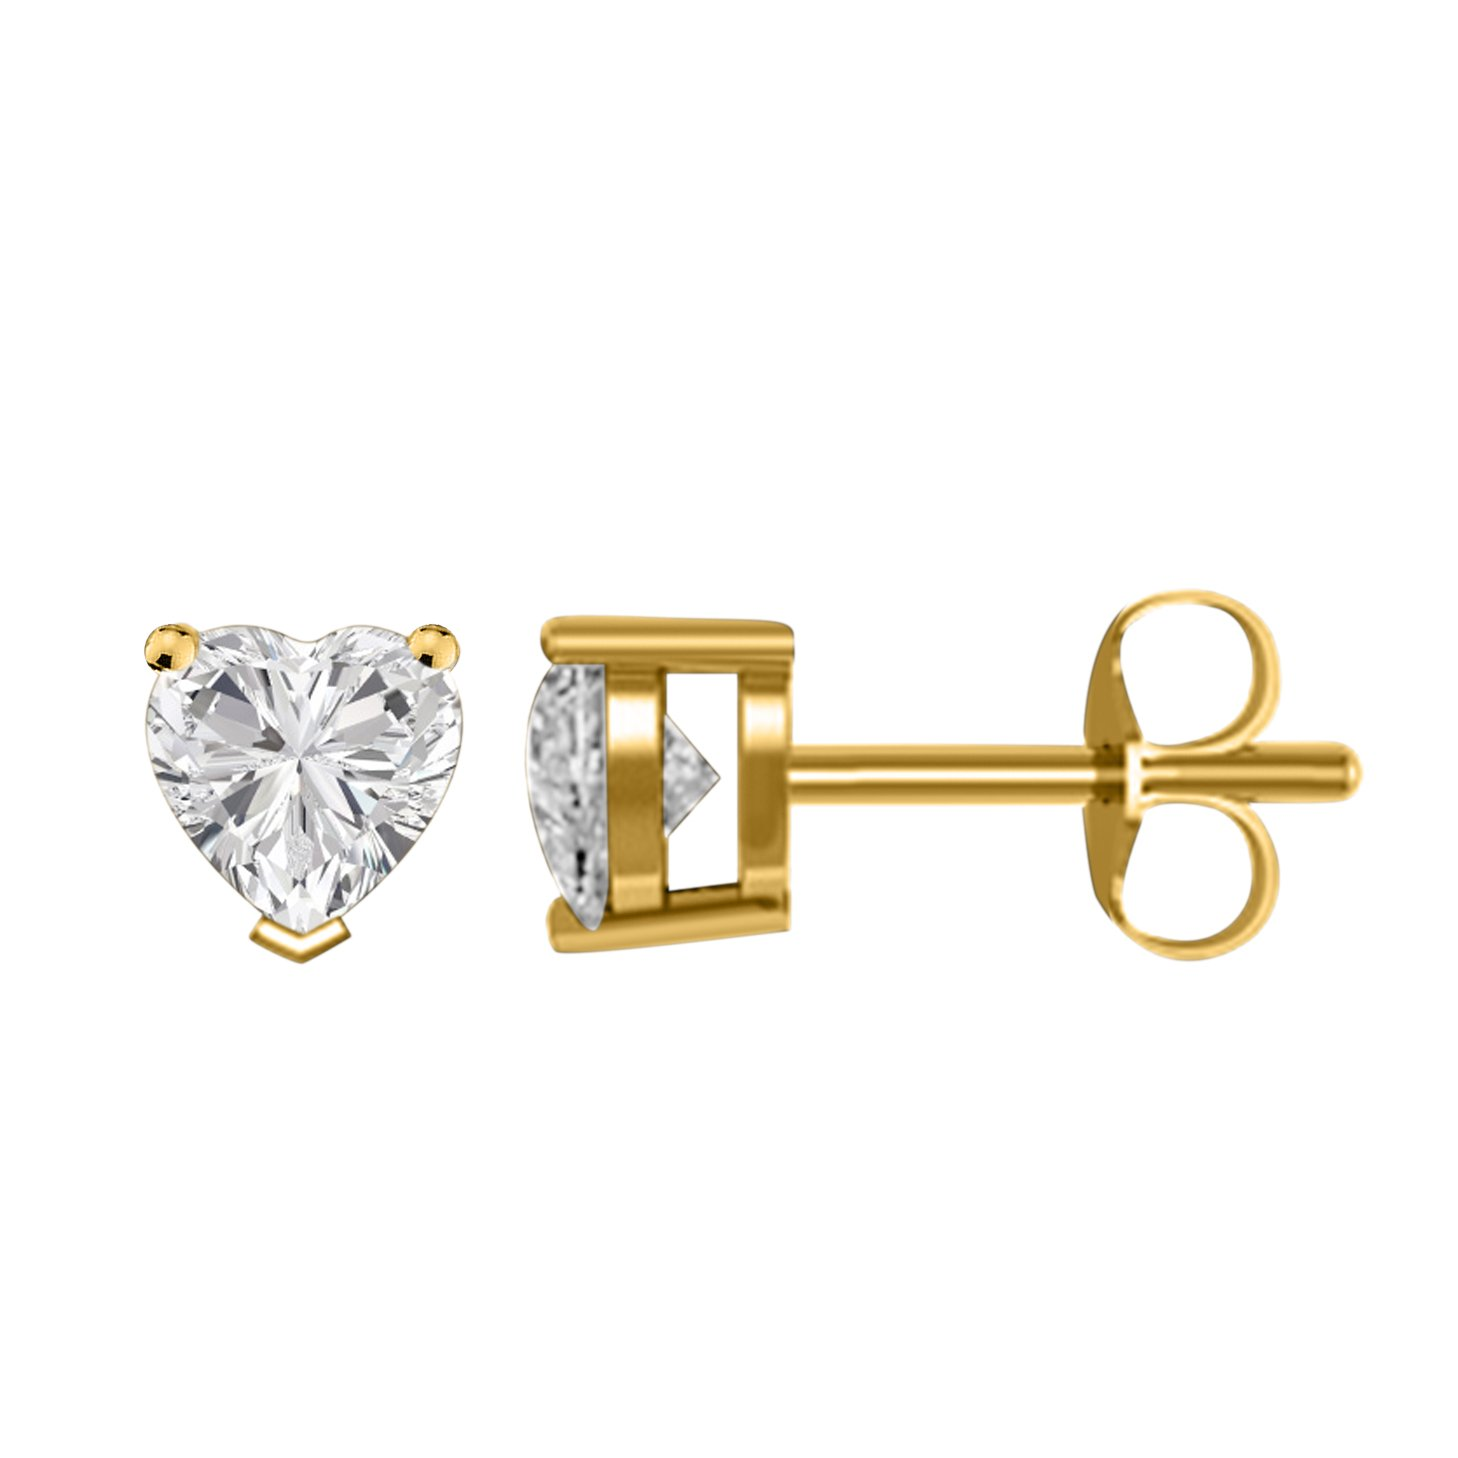 Womens /& Girls 4MM TO 8MM Heart Shape Solitaire Stud Earrings with Cubic Zirconia 14K Yellow Gold Plated